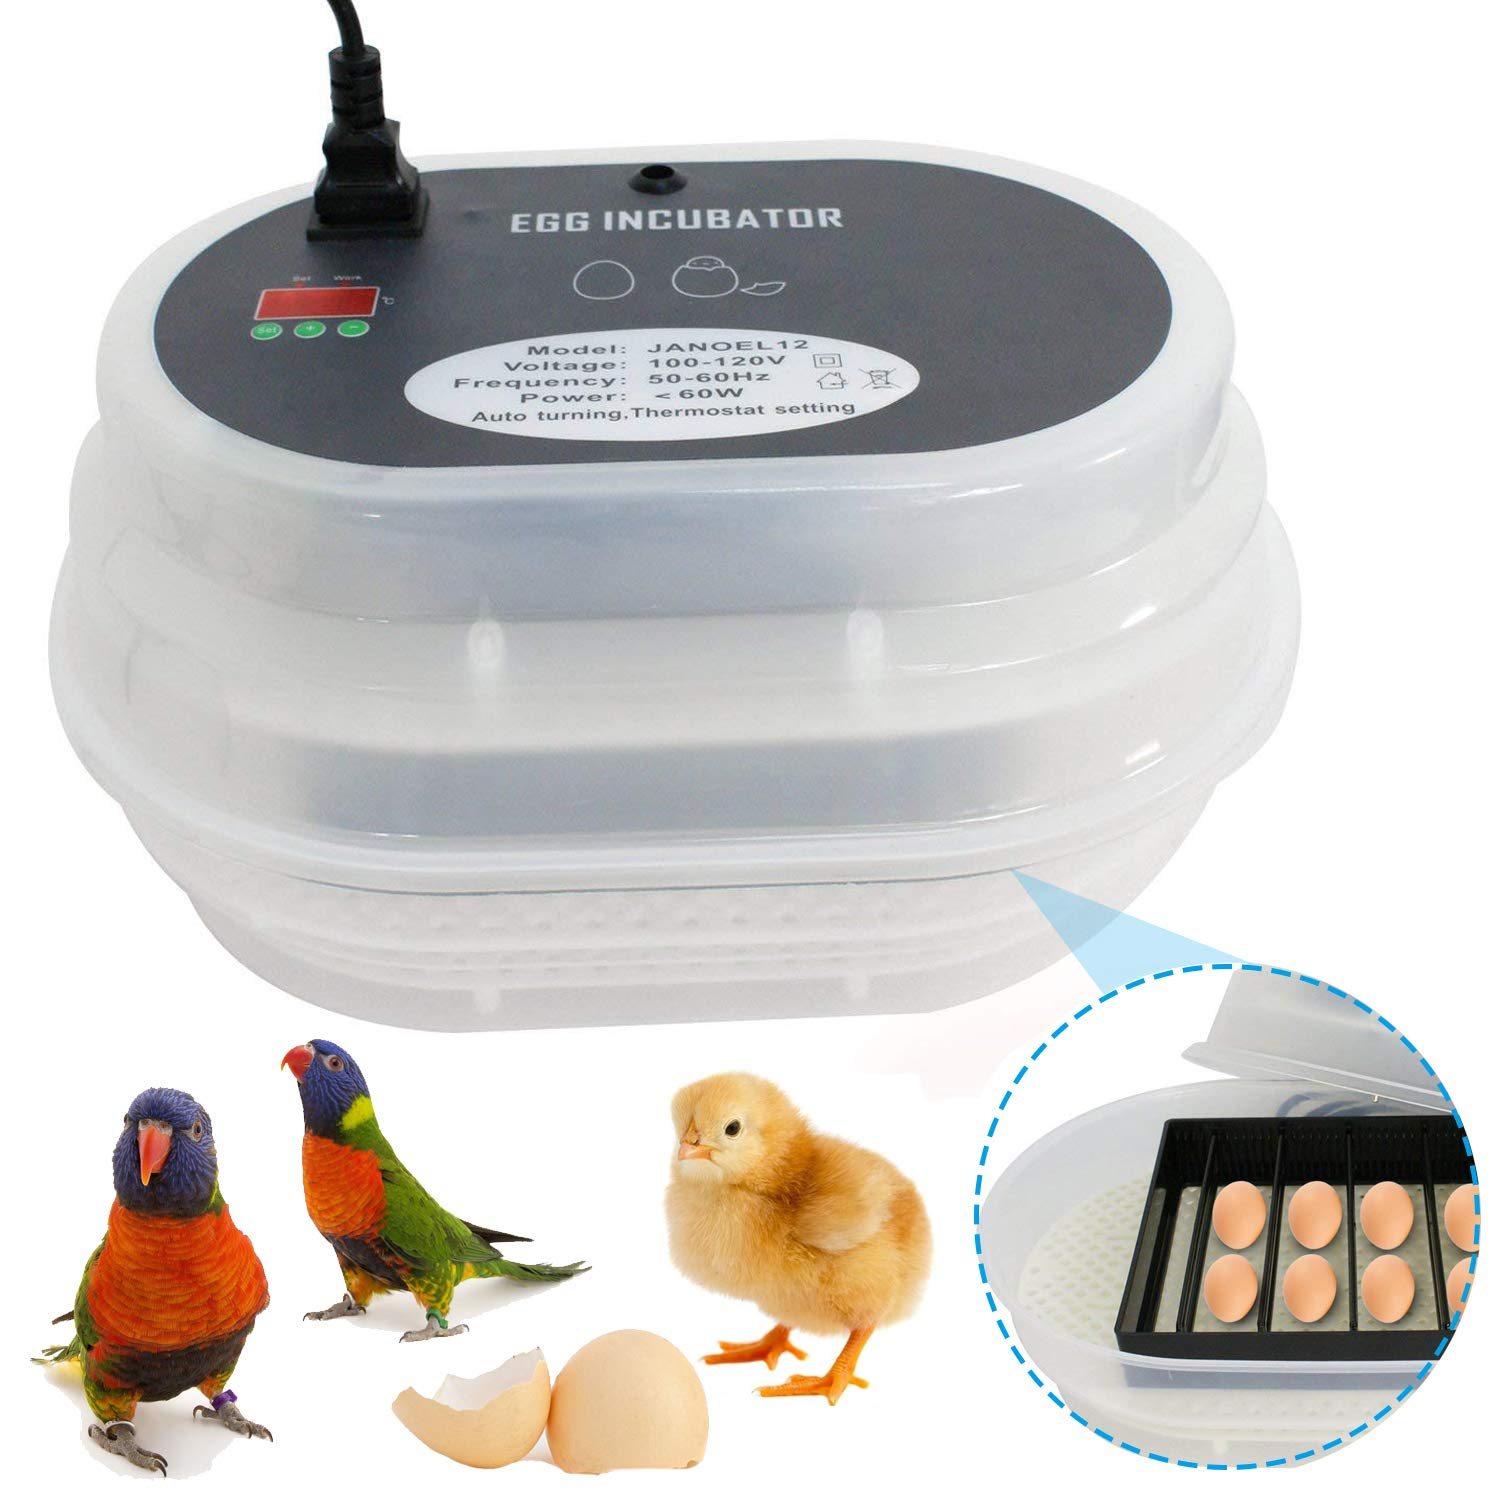 Smartxchoices Mini 9-12 Egg Incubator with Automatic Egg Turning and Humidity Control Digital Fully Automatic Poultry Hatcher for Chickens Birds Quail